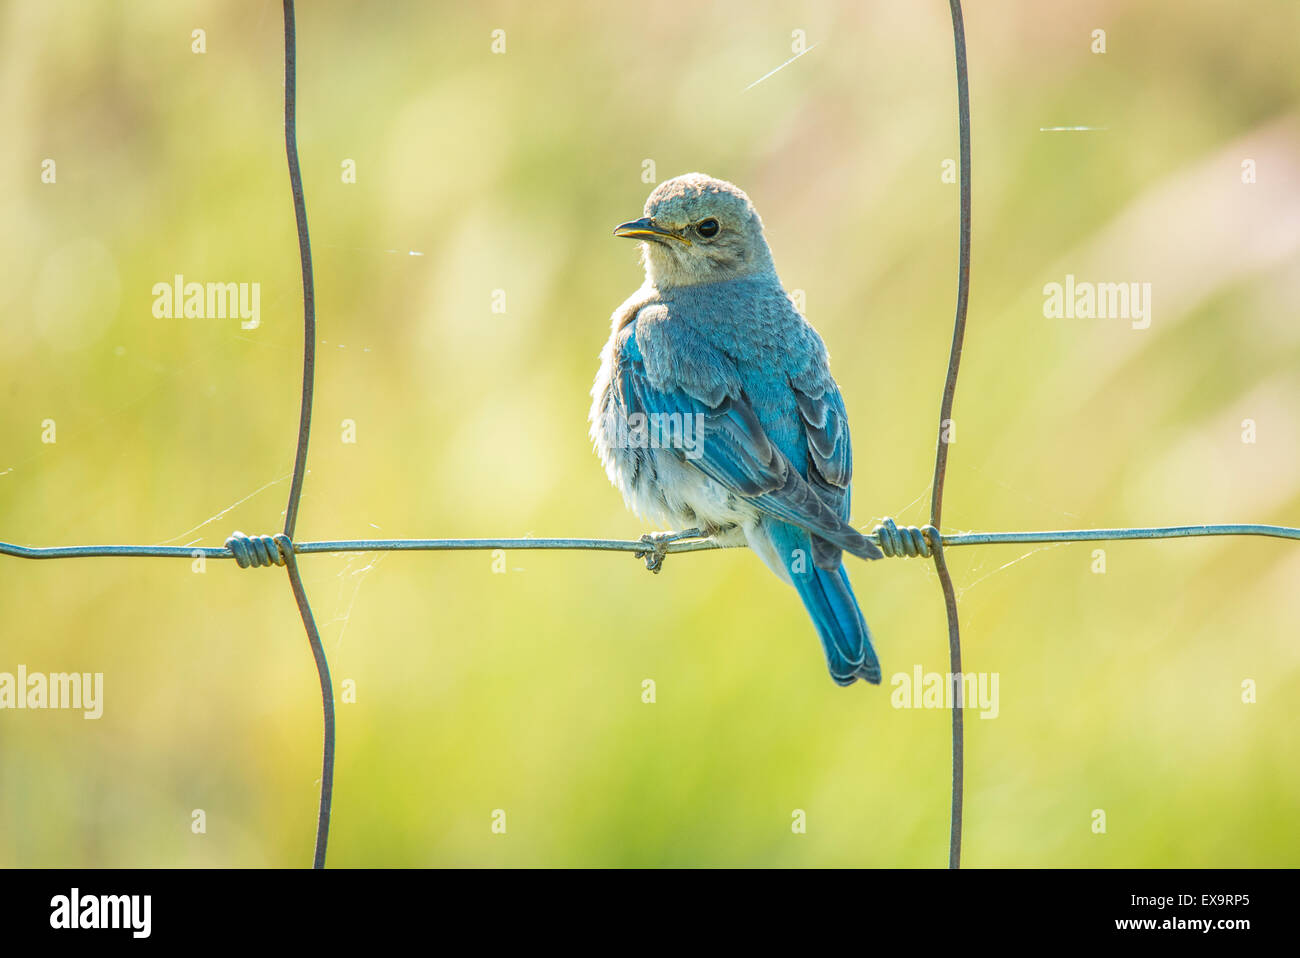 Bird Perched On A Branch Pictures, Photos, and Images for Facebook ...